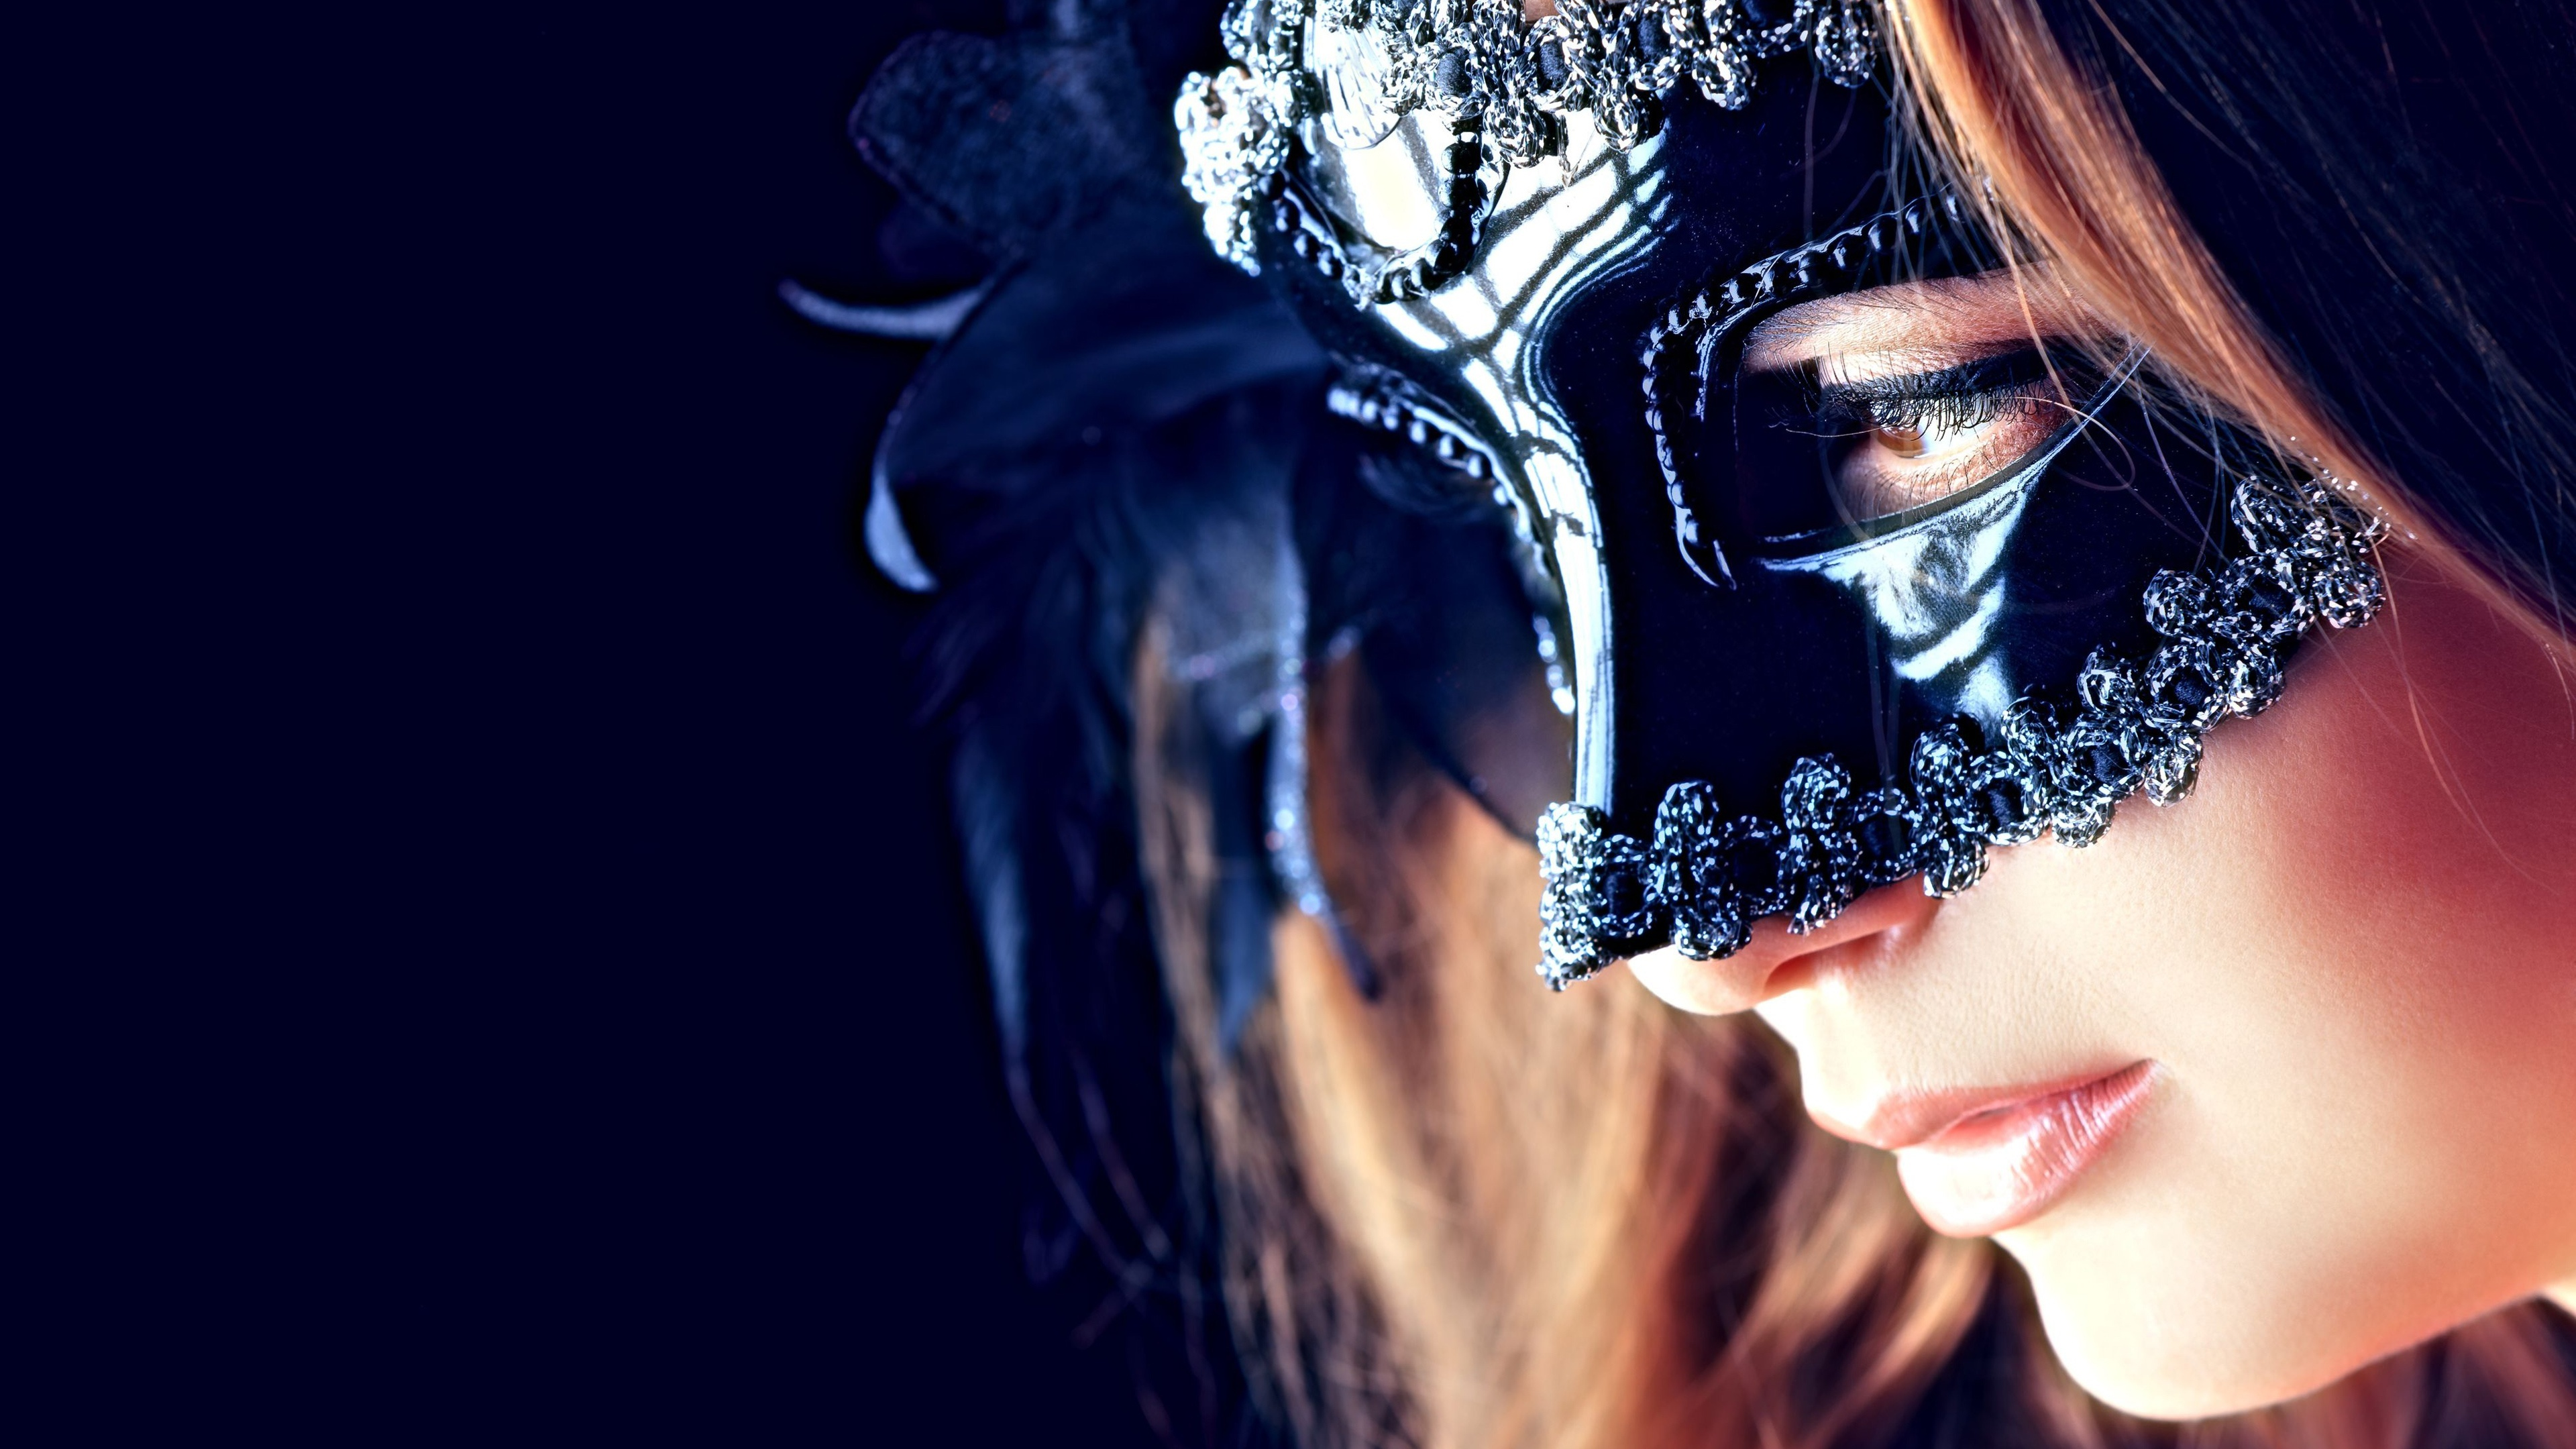 New Masquerade Mask High Defination Wallpapers   All HD 3840x2160